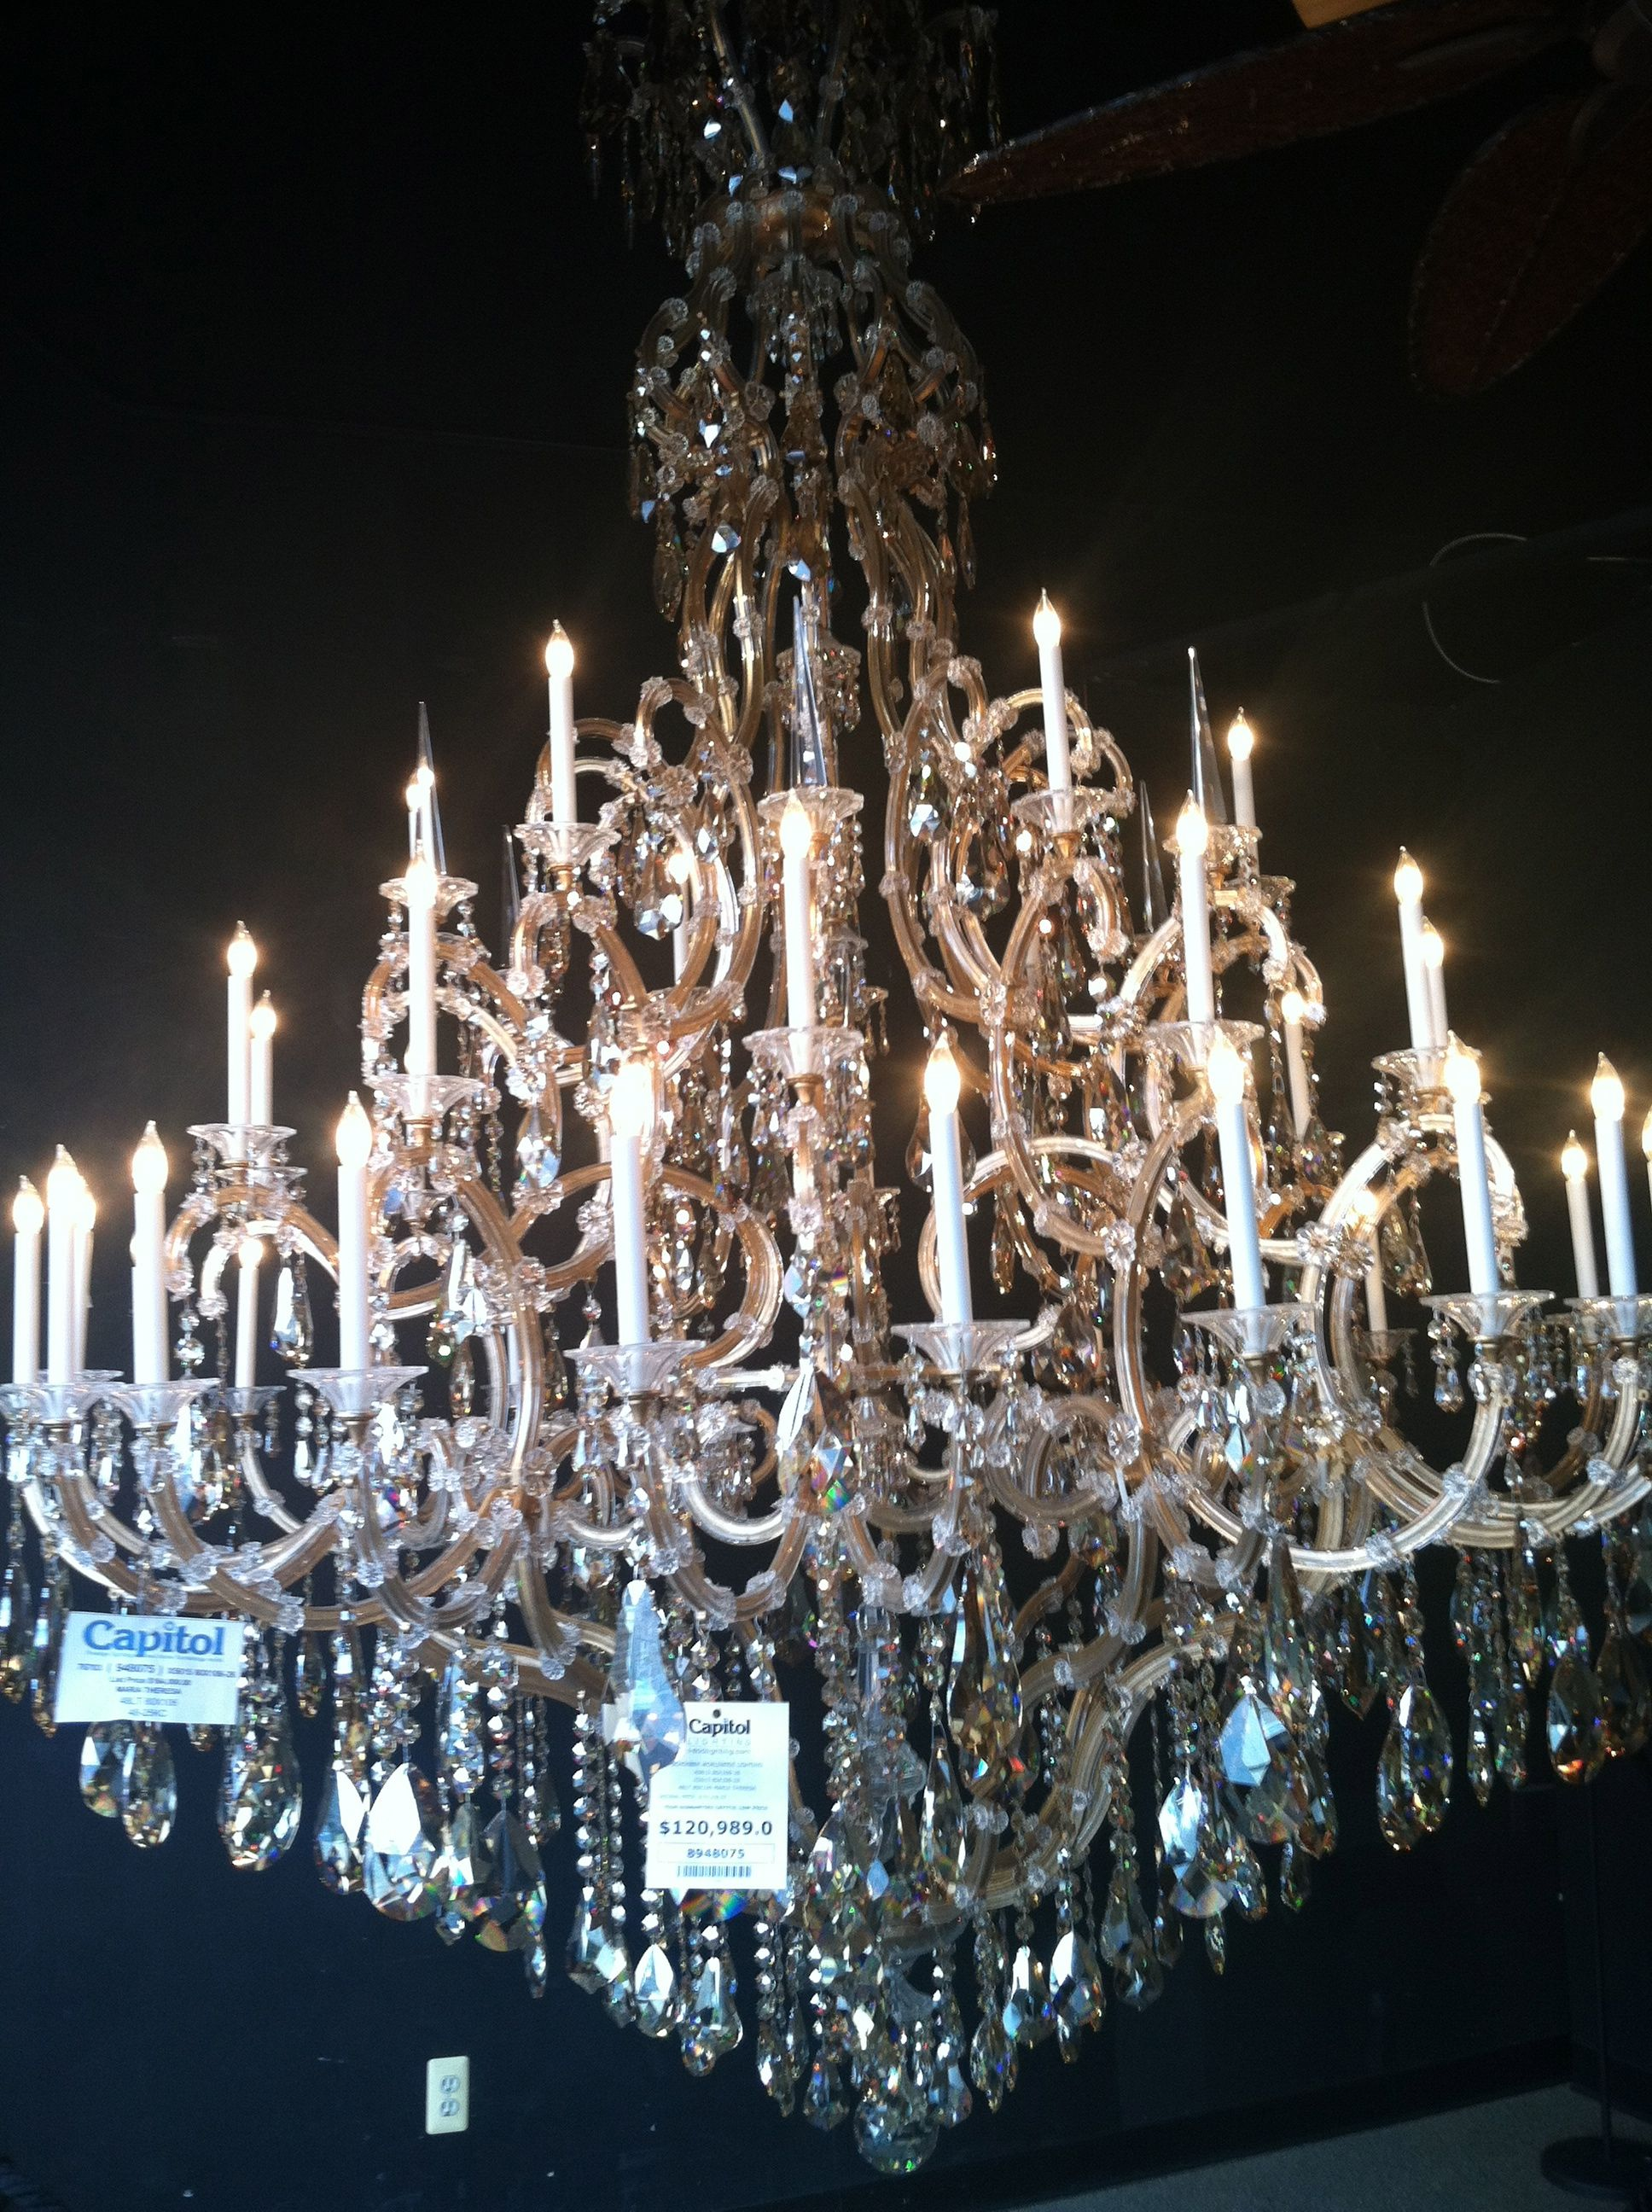 The Biggest And Most Expensive Chandelier I Ve Ever Seen Chandelier Decor Home Decor